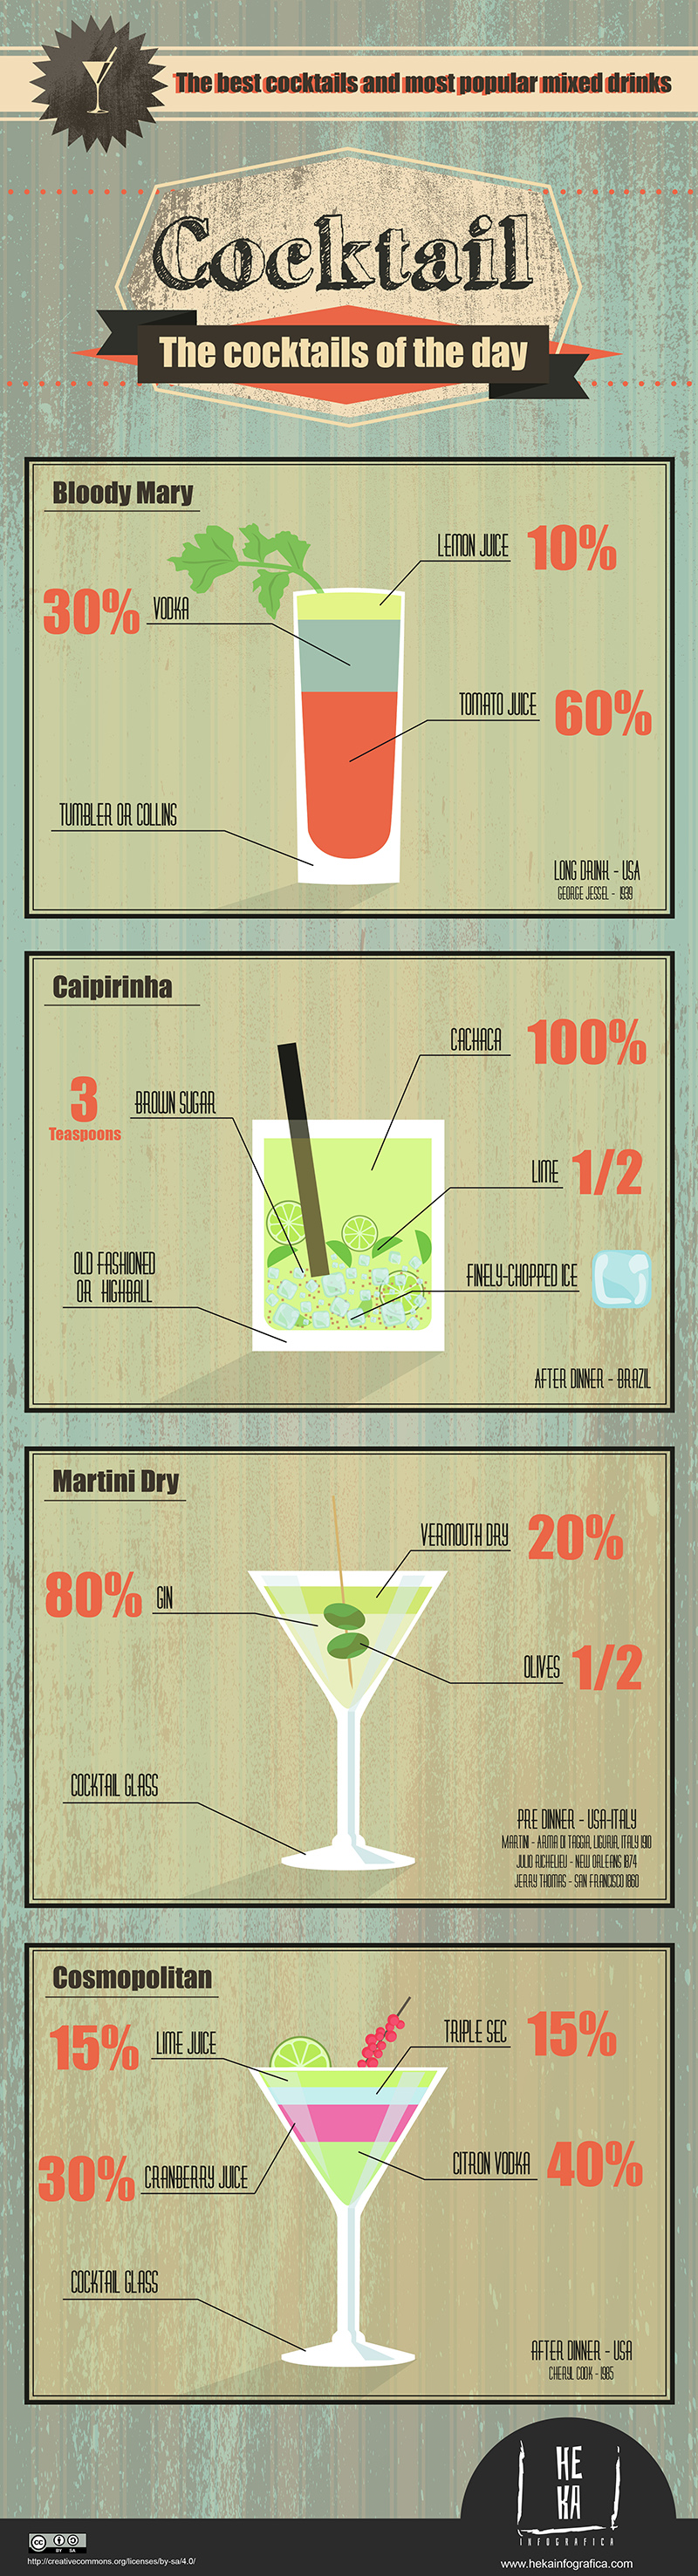 Infographics Cocktail - the Cocktails of the day. The best cocktails and most popular mixed drinks. Bloody Mary, Caipirinha, Martini Dry, Cosmopolitan